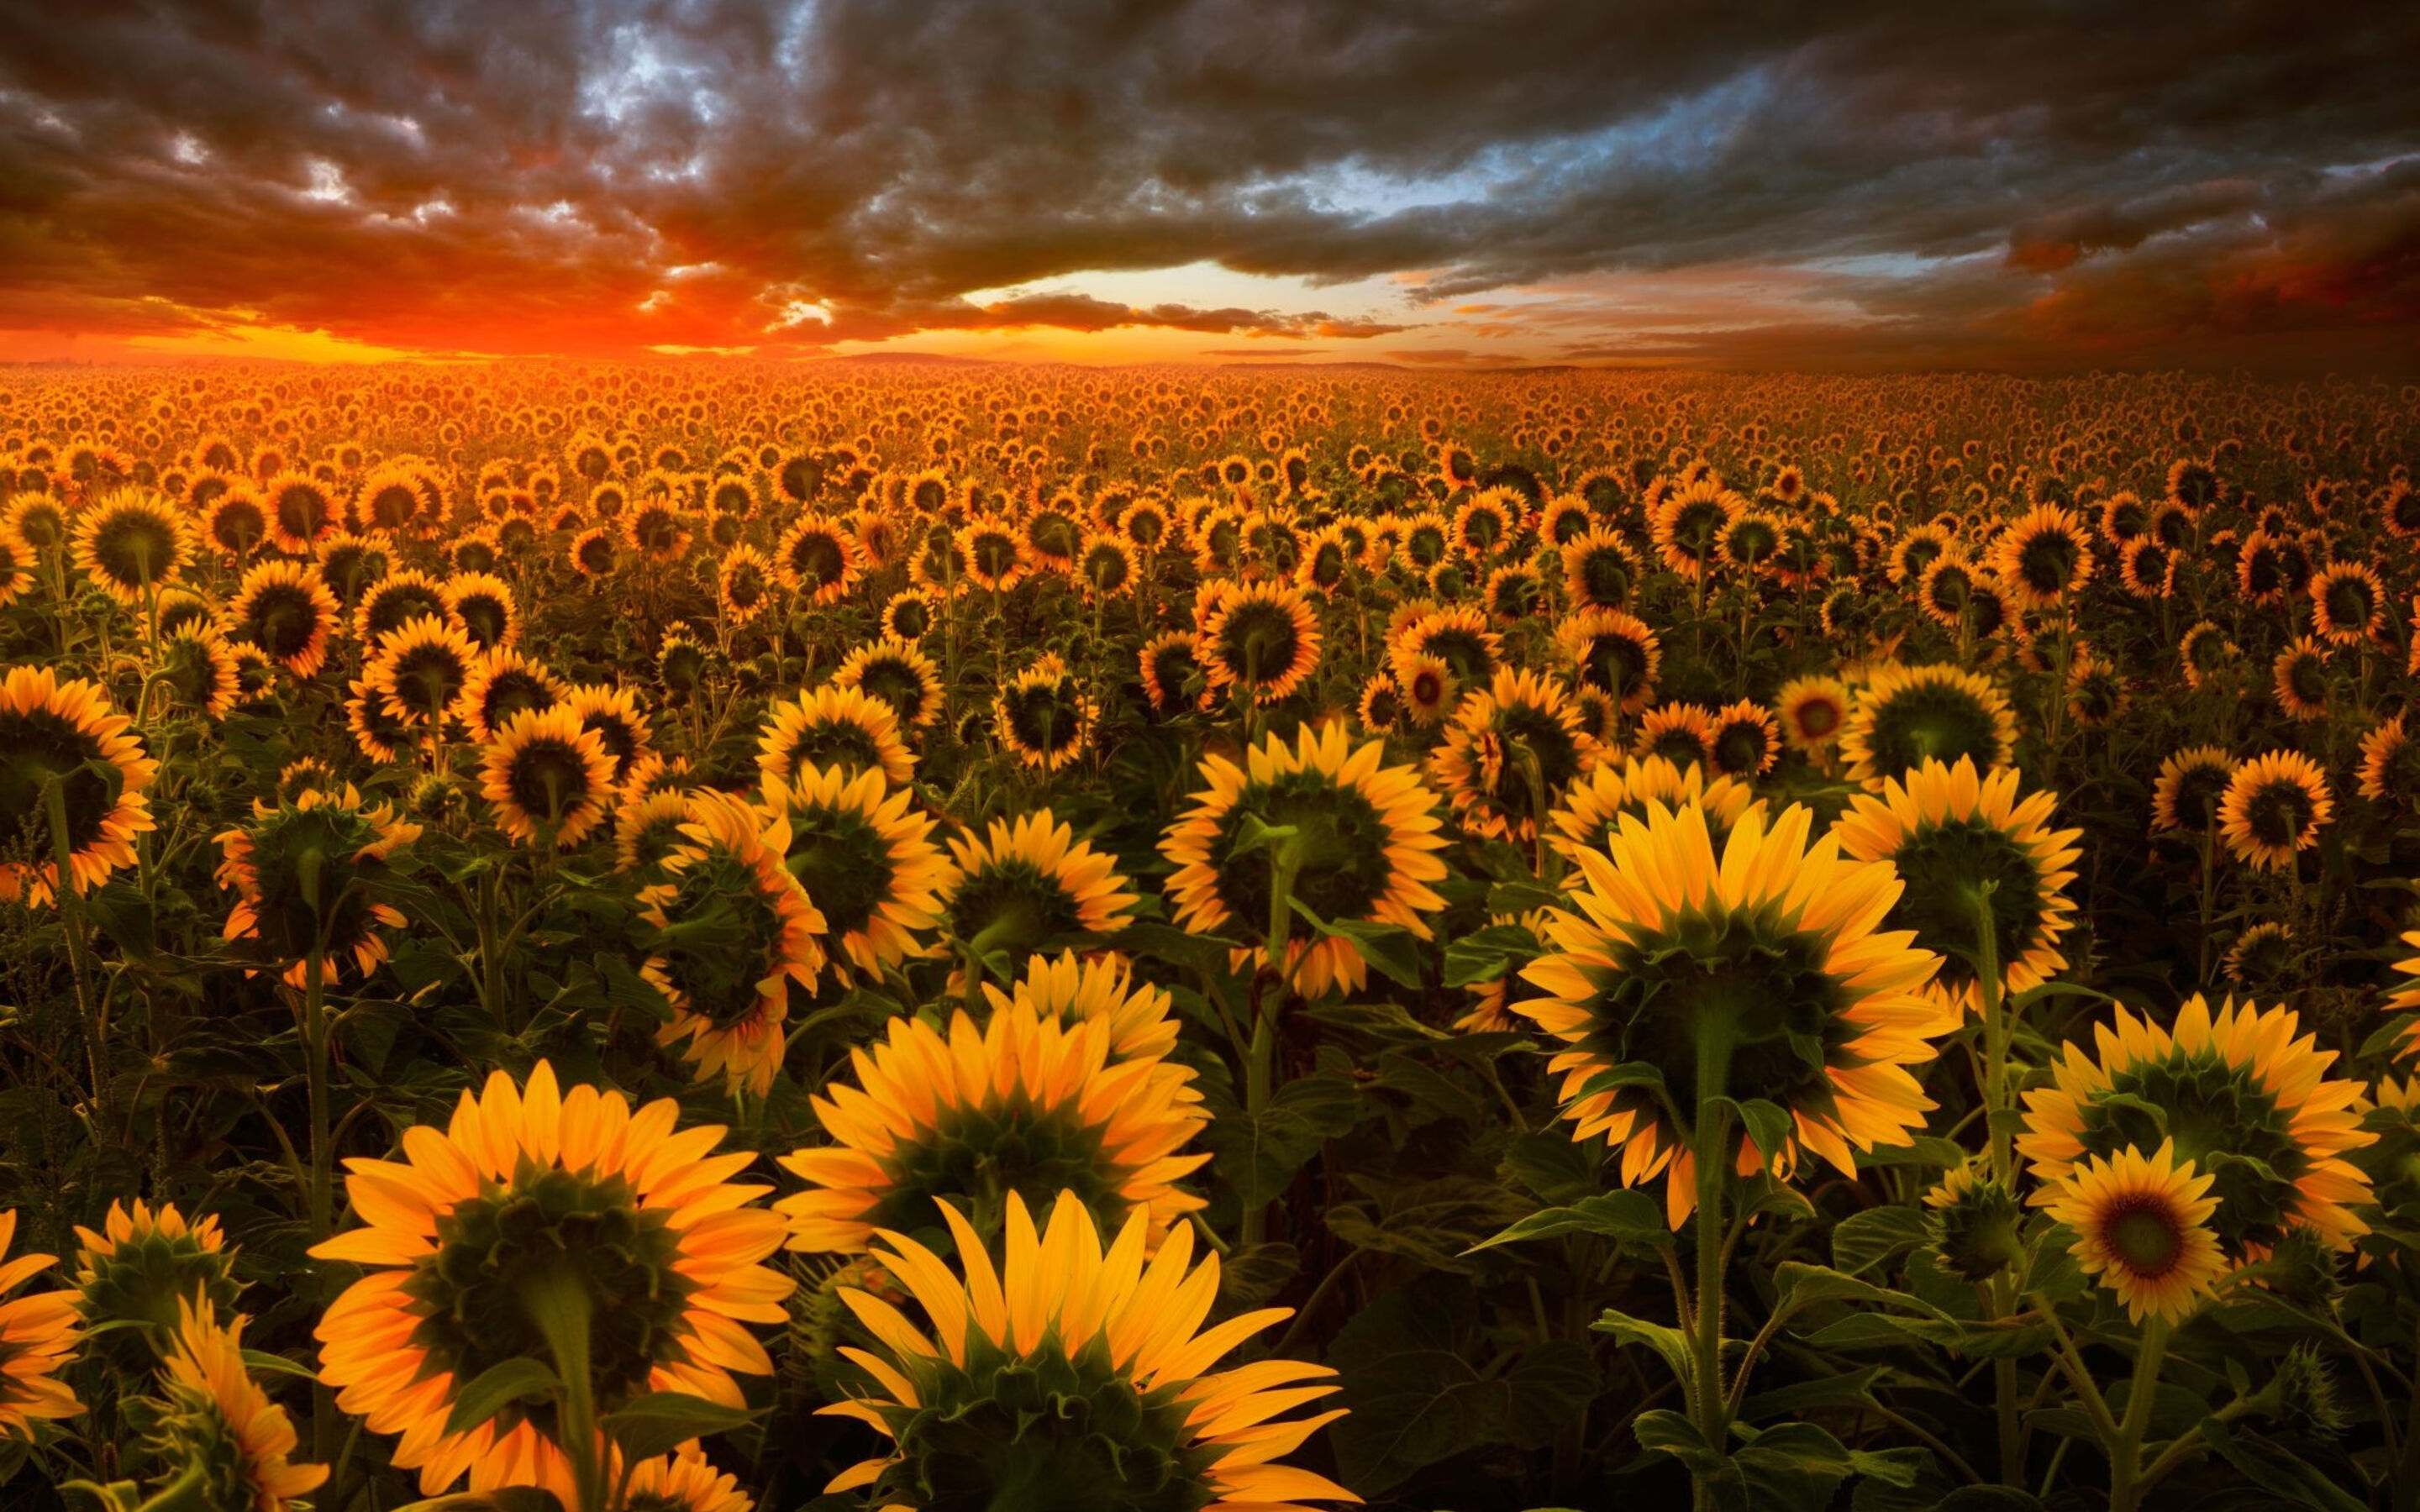 Amazing Wallpaper Macbook Sunflower - sunflower-field-hd-2880x1800  Perfect Image Reference_41774.jpg